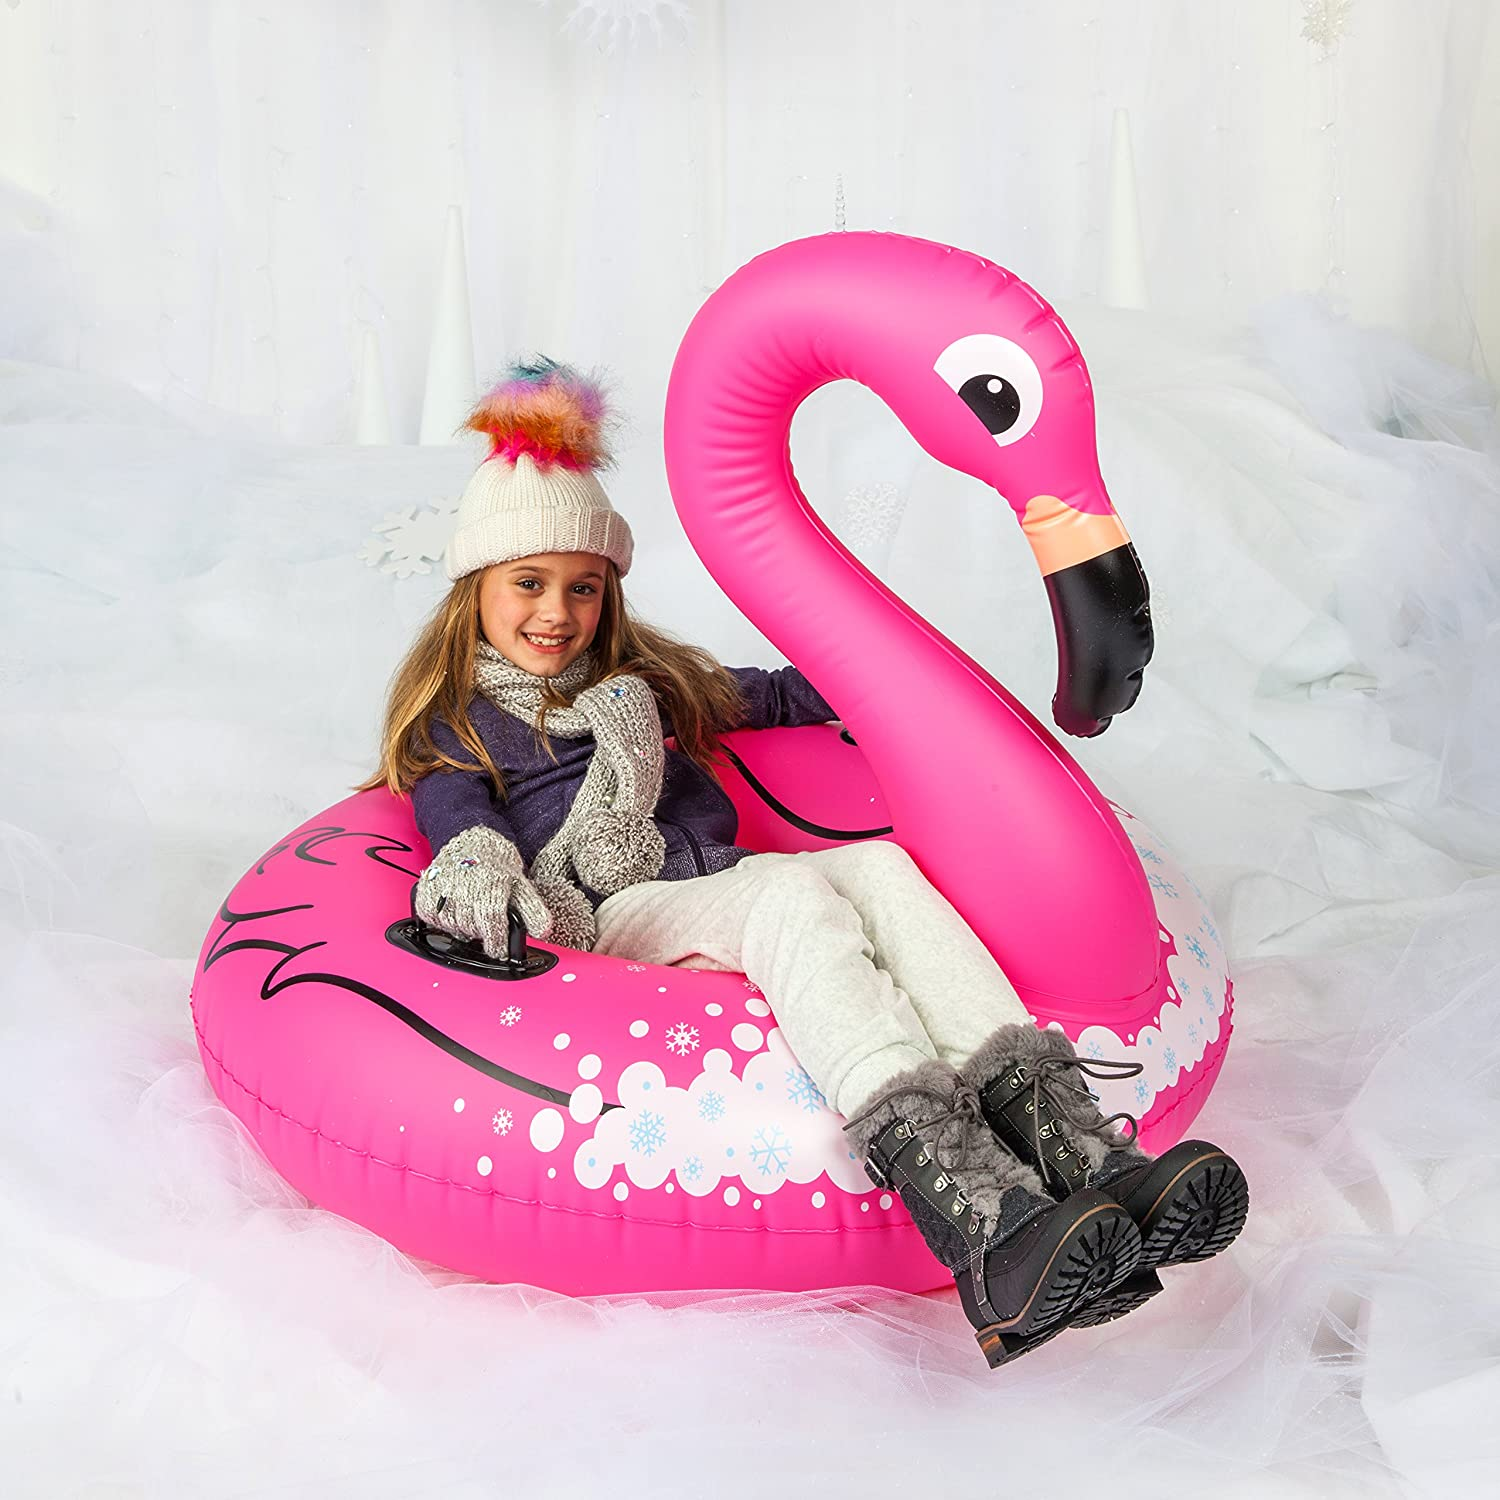 BigMouth Inc. Flamingo Snow Tube – 3 ft. Wide Inflatable Snow Tube with Easy Grip Handles, Made of Durable Vinyl with Welded Seams – Makes a Great Gift